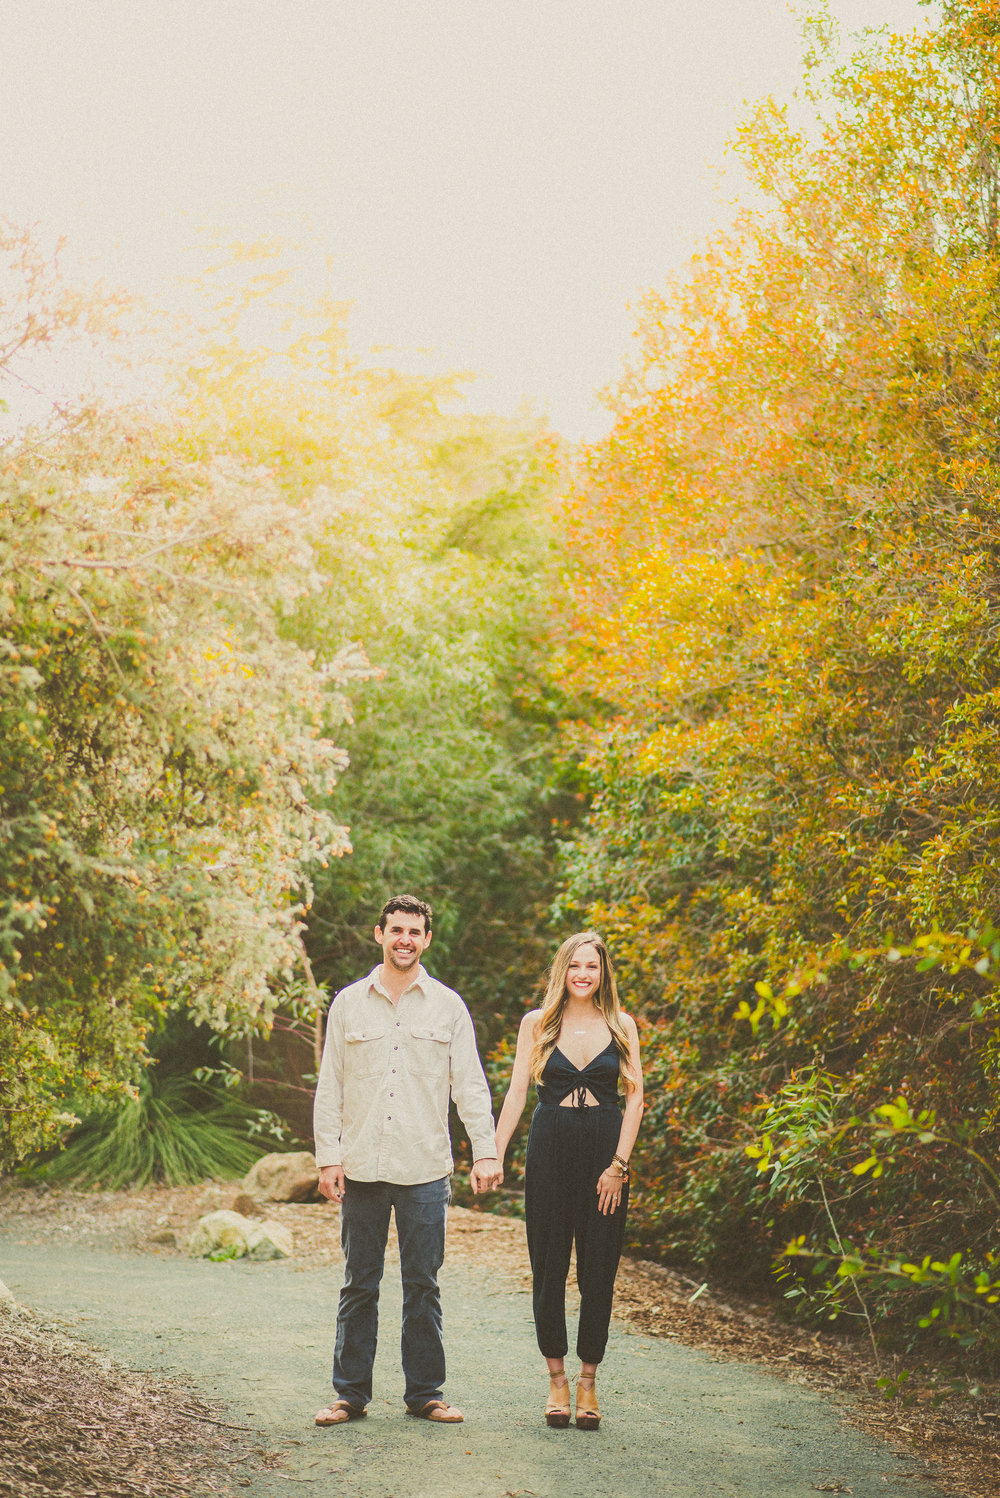 Heather & Forrest - Engagement Photos 2018-8.jpg